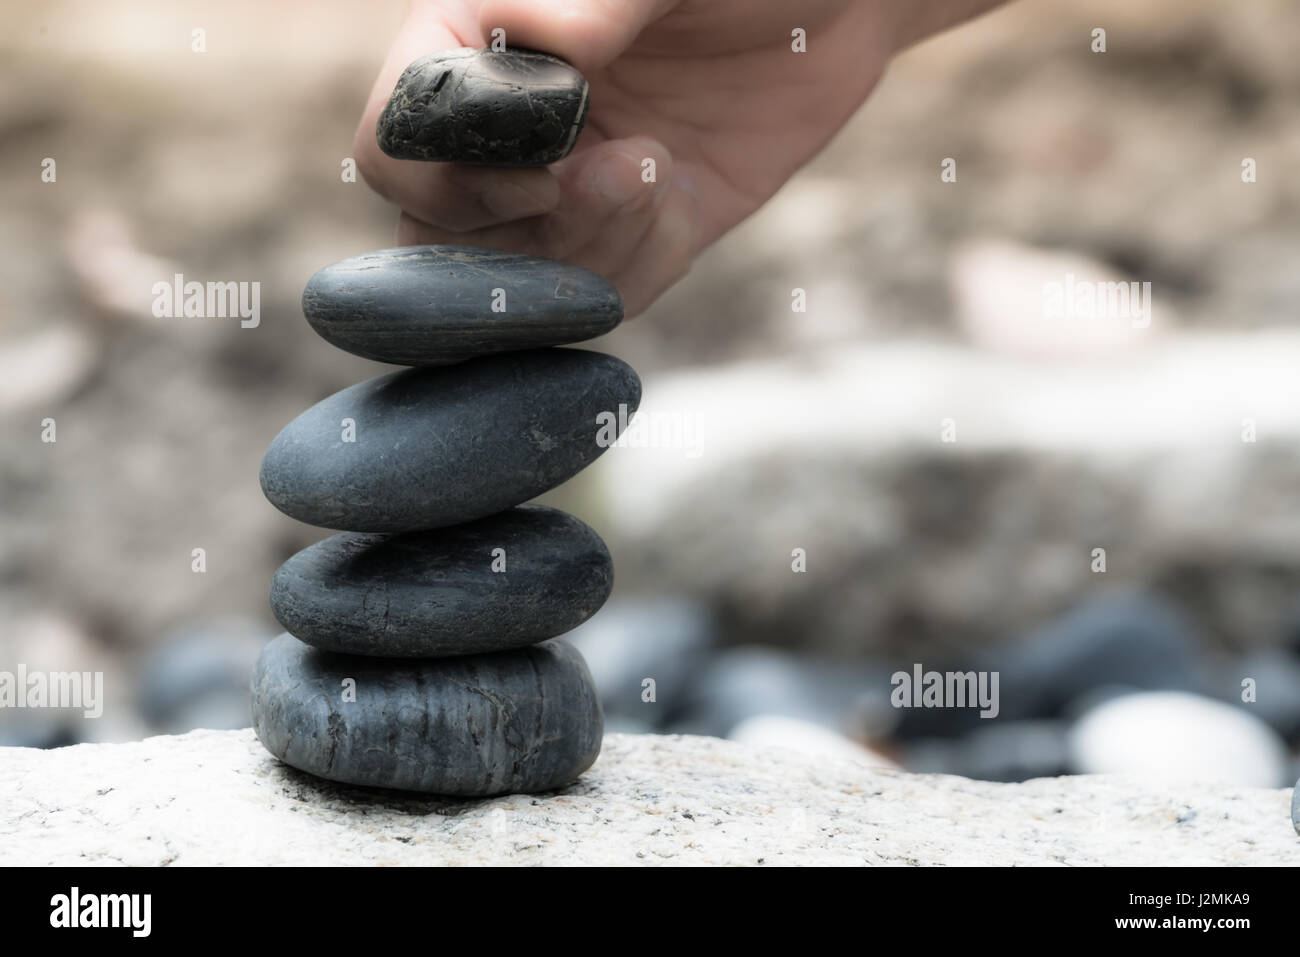 All the successful have a good support,  zen stone, balance, rock, peaceful concept - Stock Image